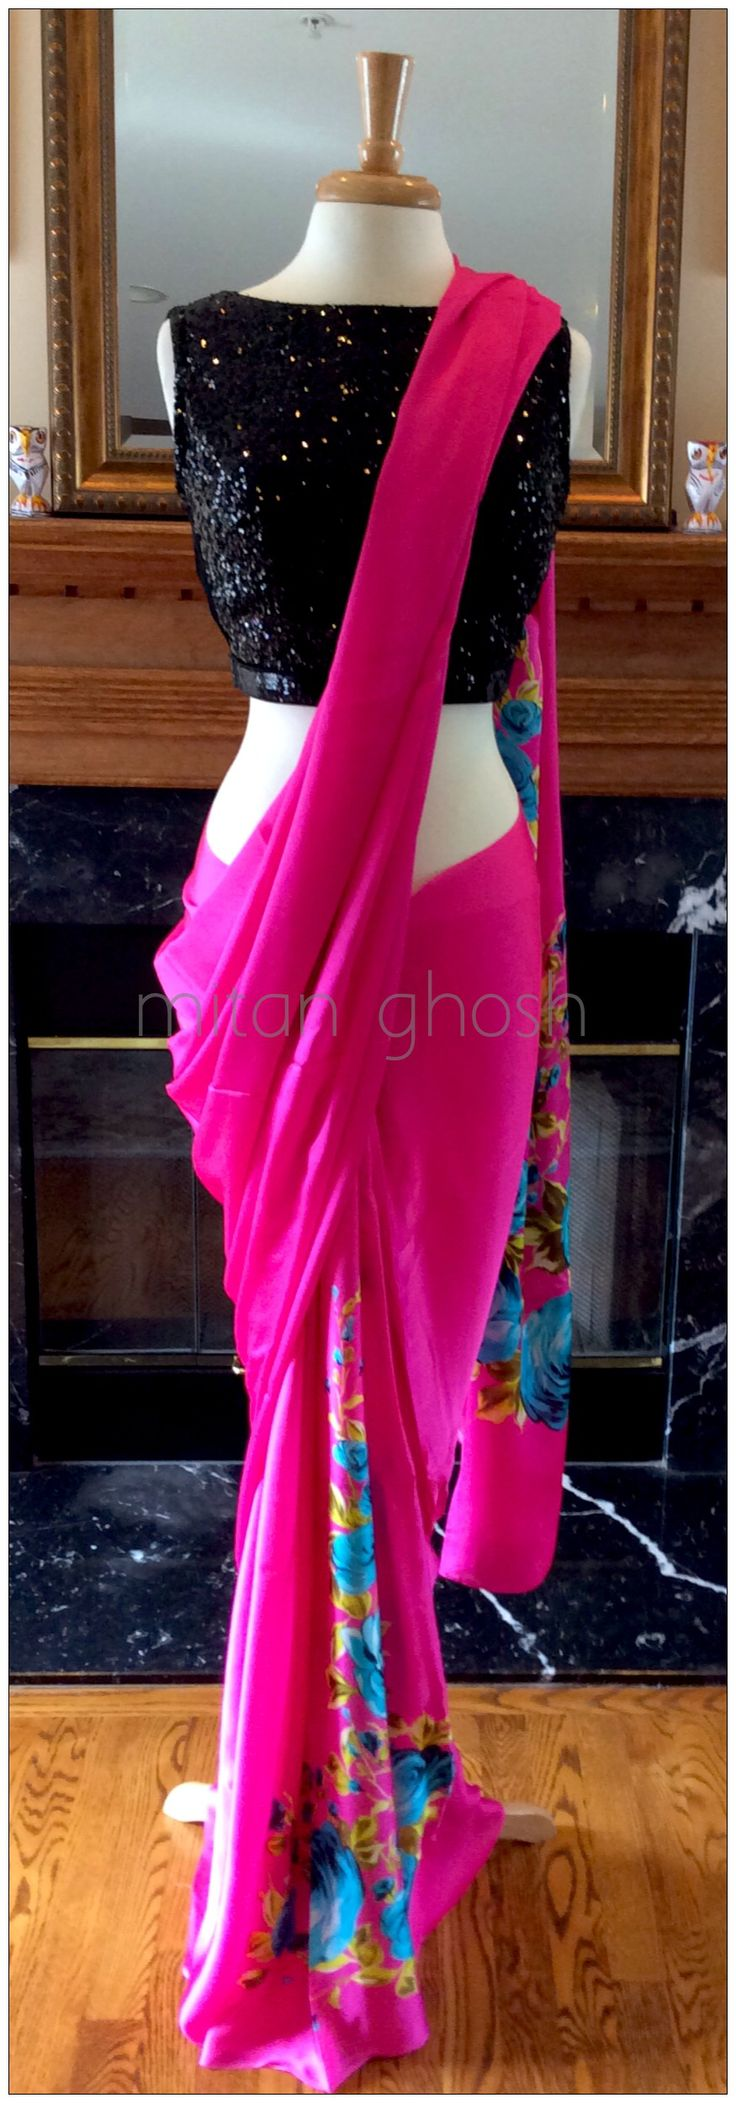 Rose printed satin georgette saree.